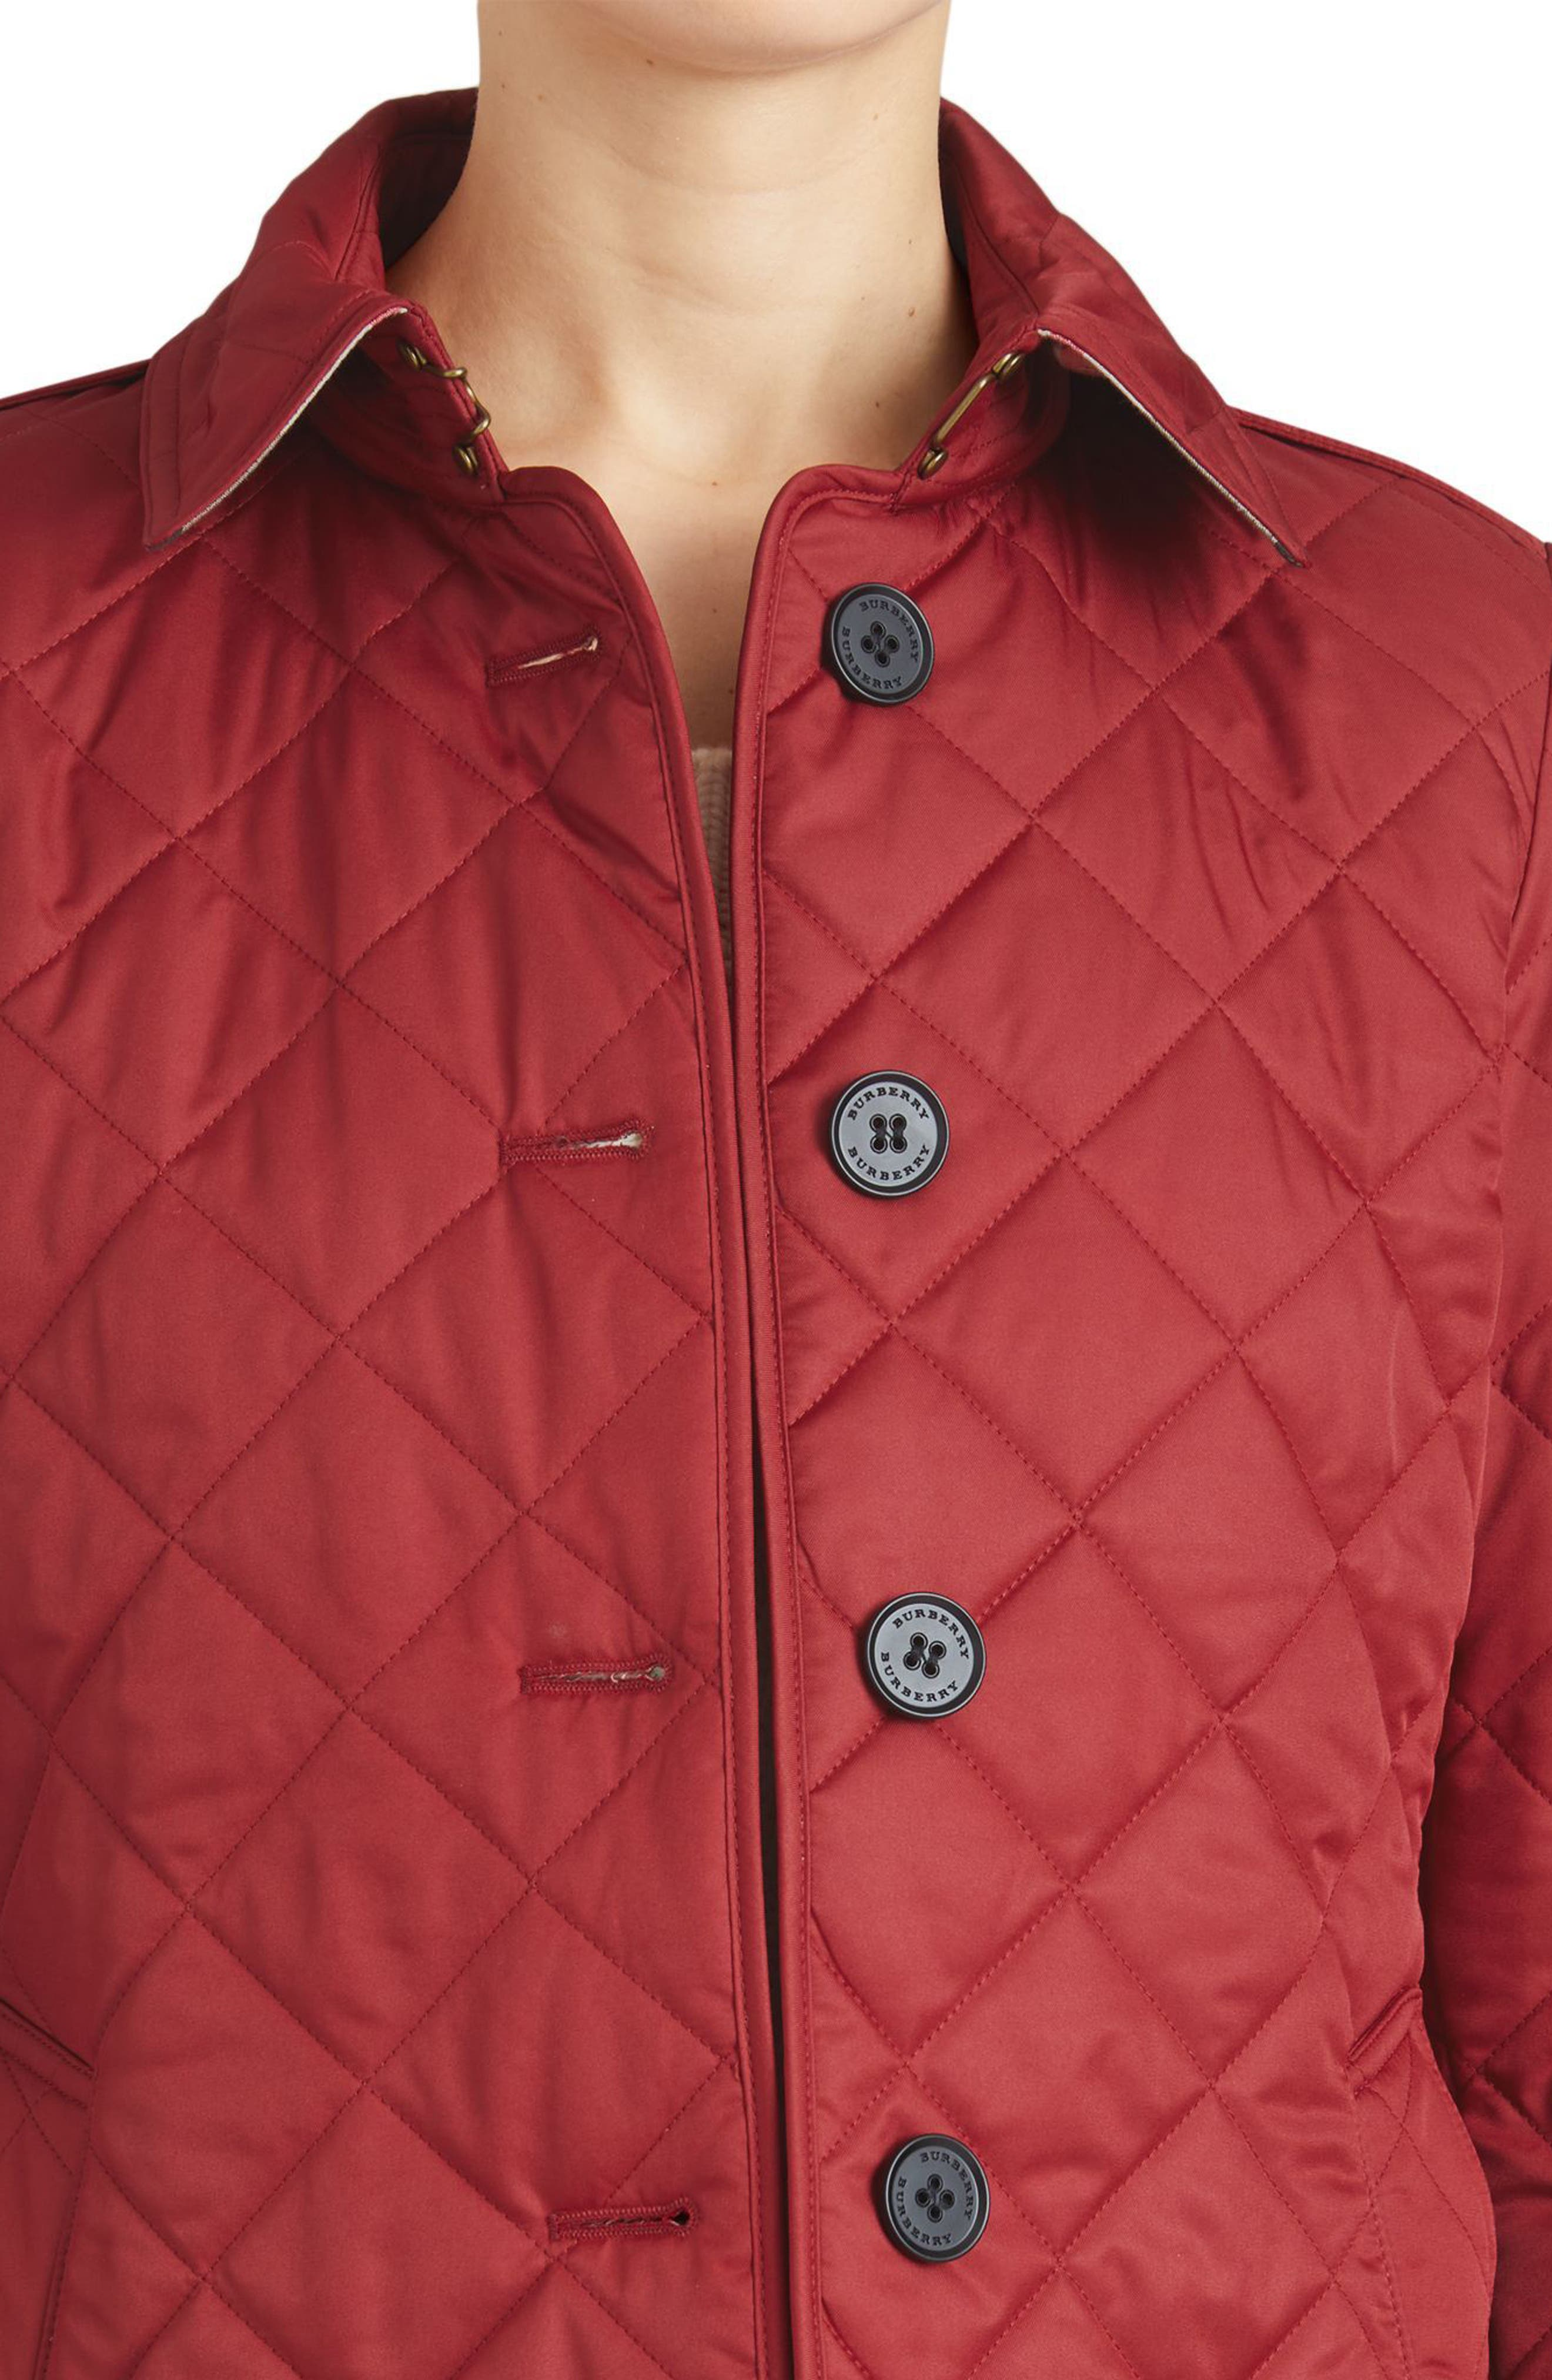 Frankby Quilted Jacket,                             Alternate thumbnail 4, color,                             PARADE RED